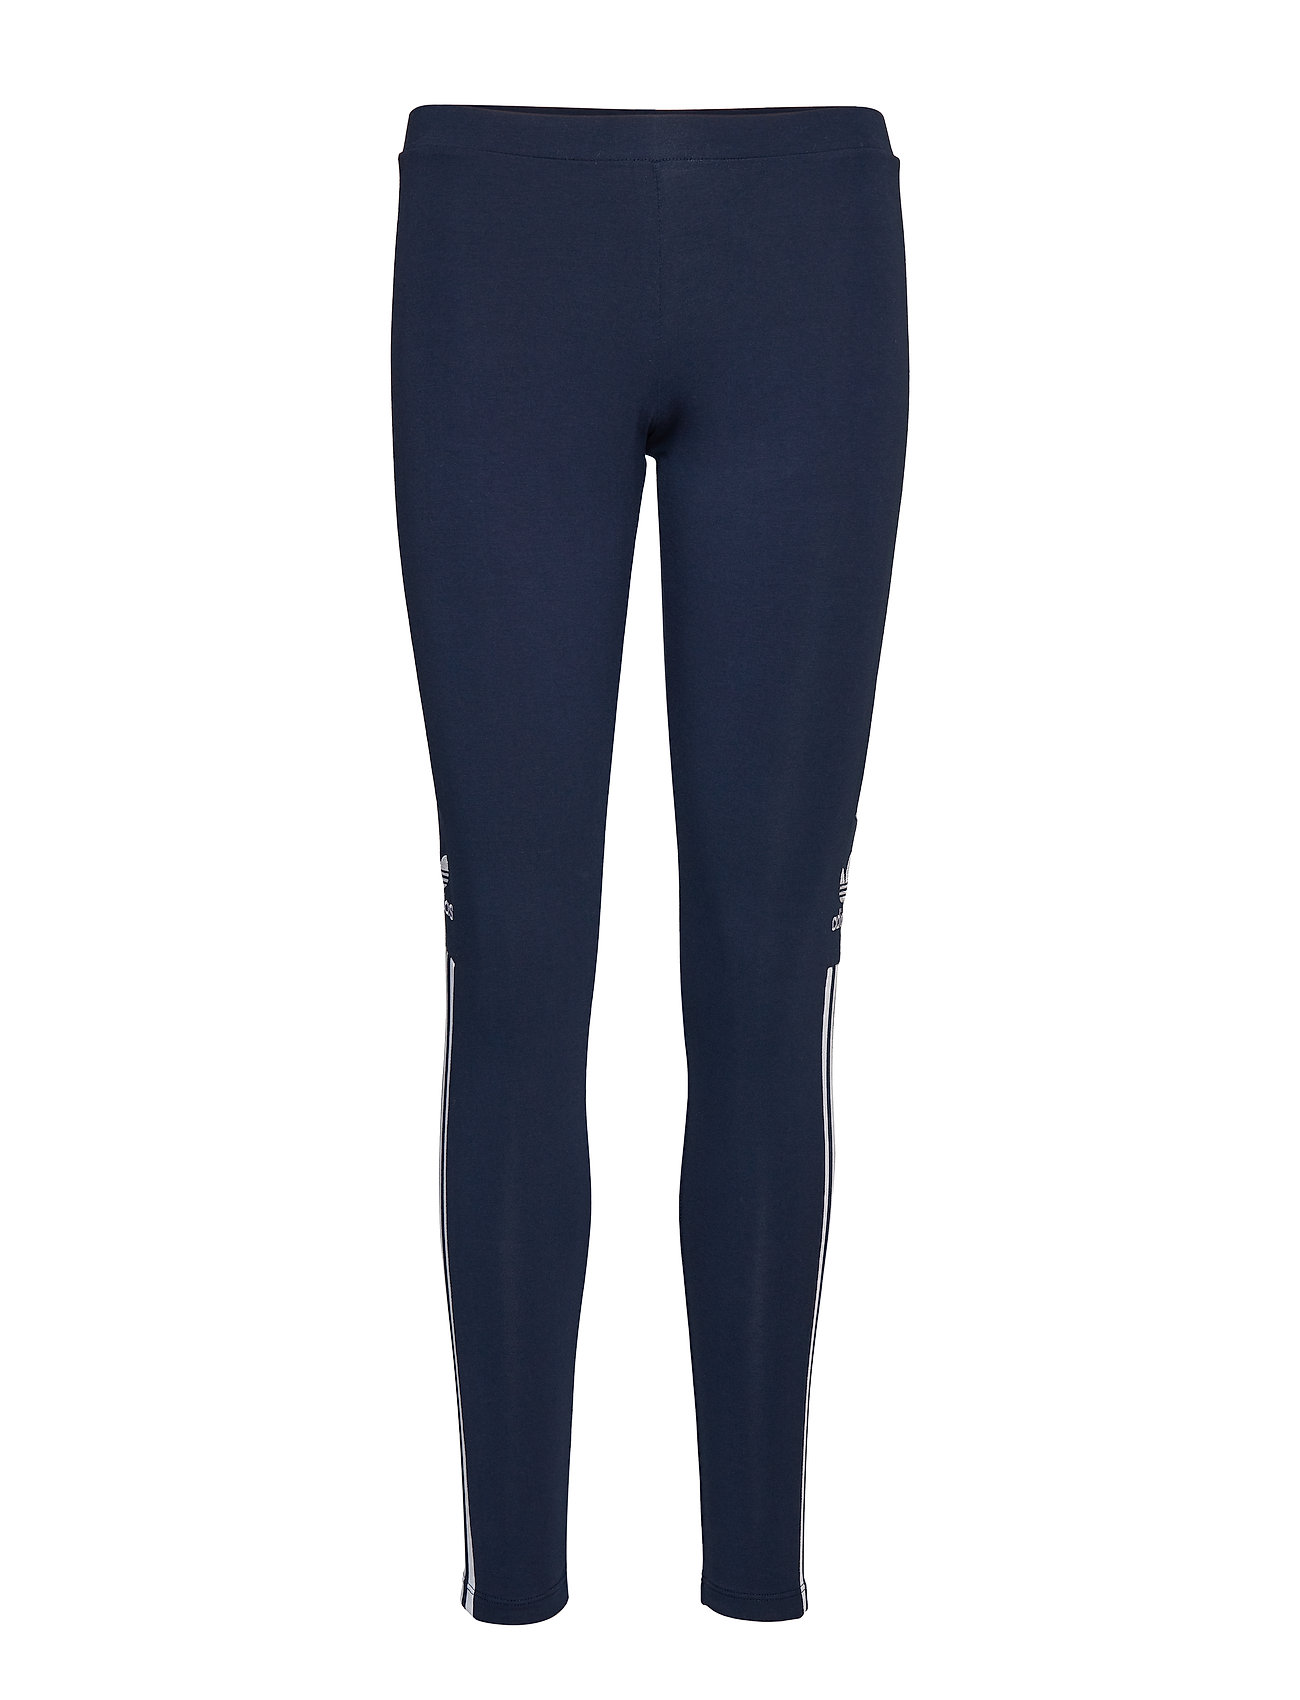 adidas Originals TREFOIL TIGHT - CONAVY